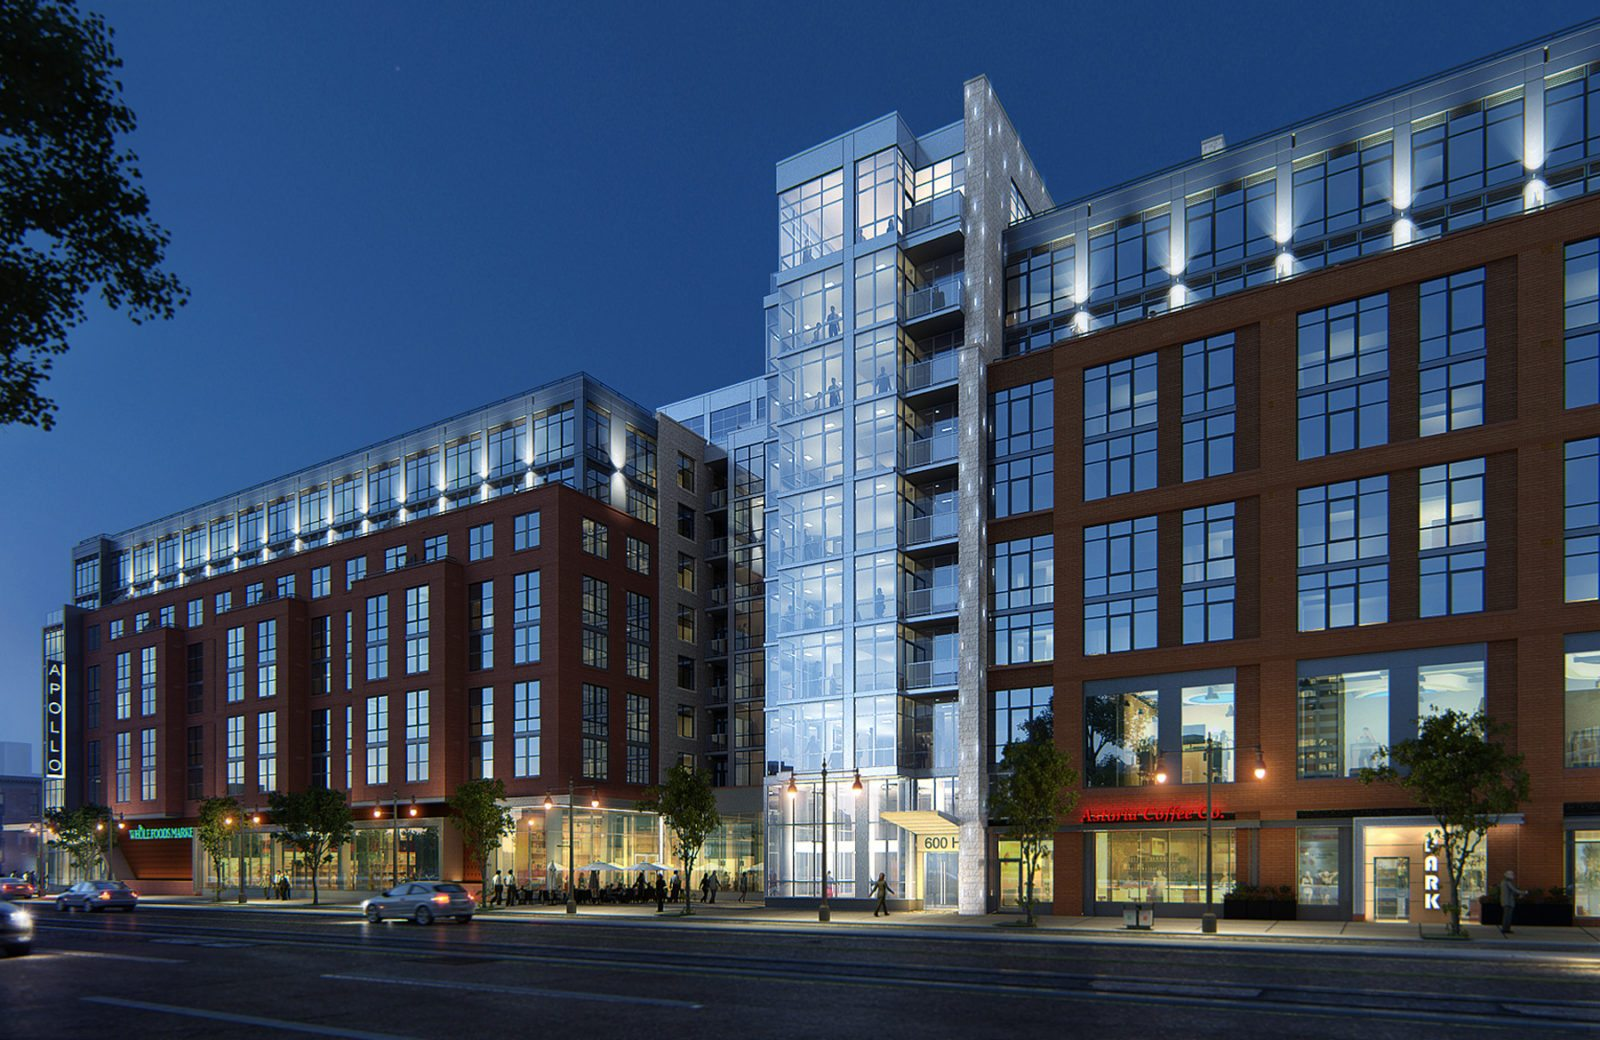 the-apollo-apartments-h-street-washington-dc-exterior-at-night-1600x1040